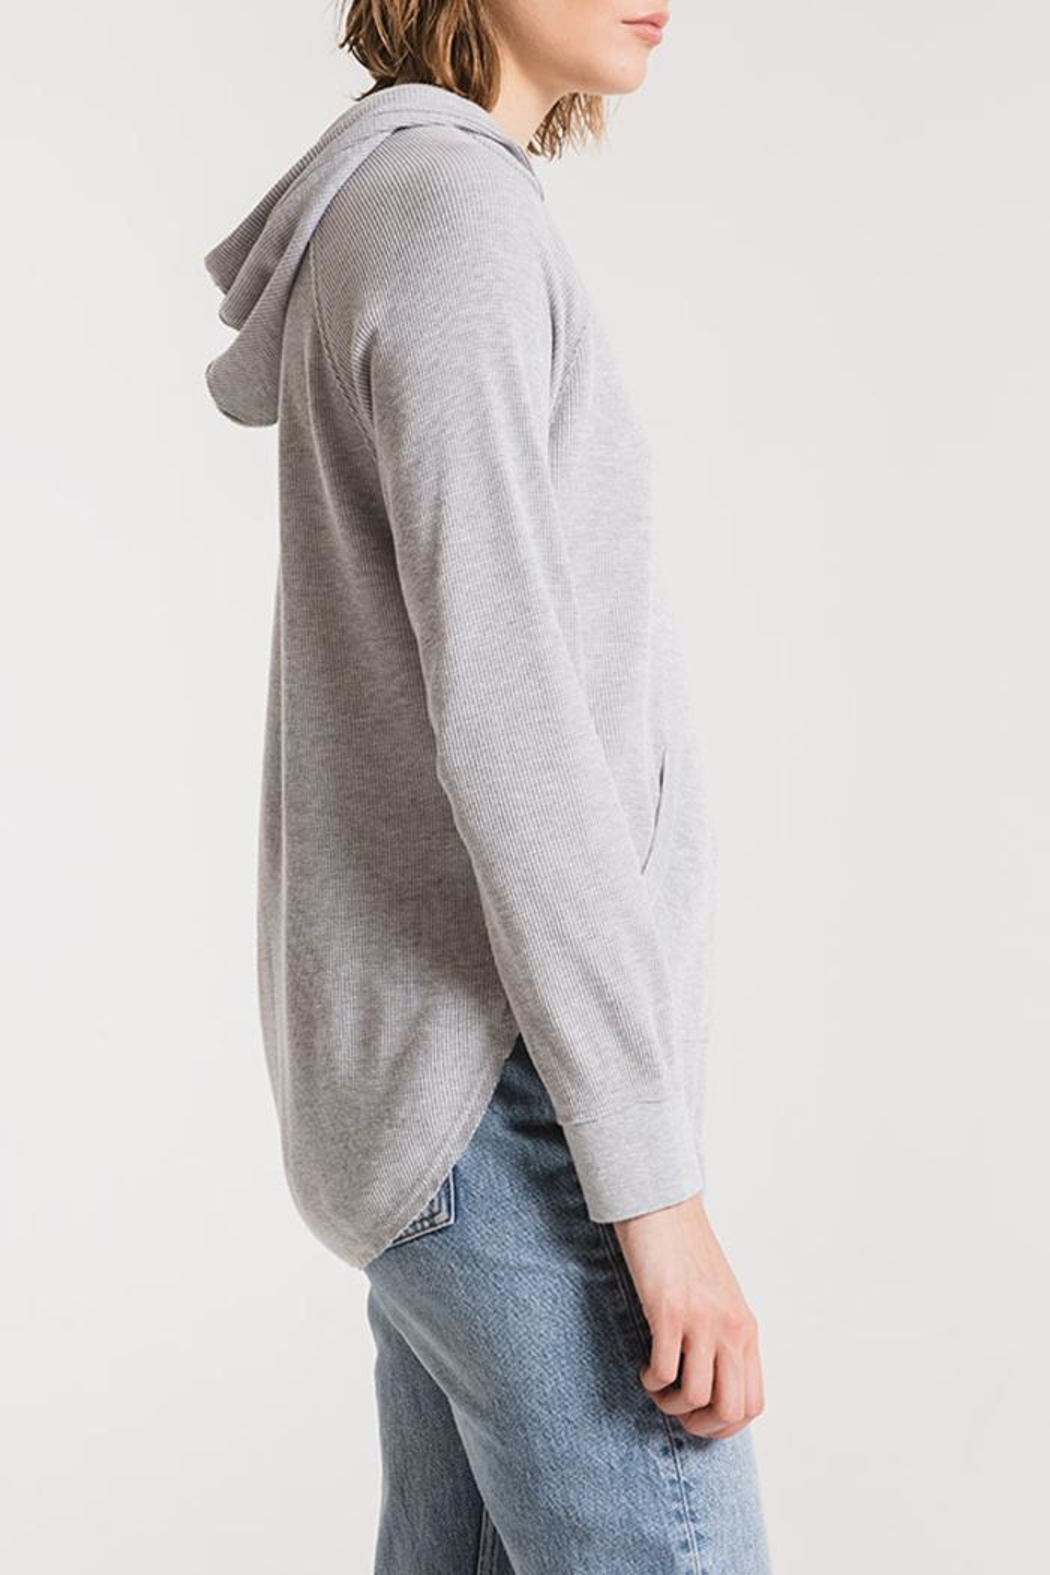 z supply Thermal Hooded Tunic - Side Cropped Image